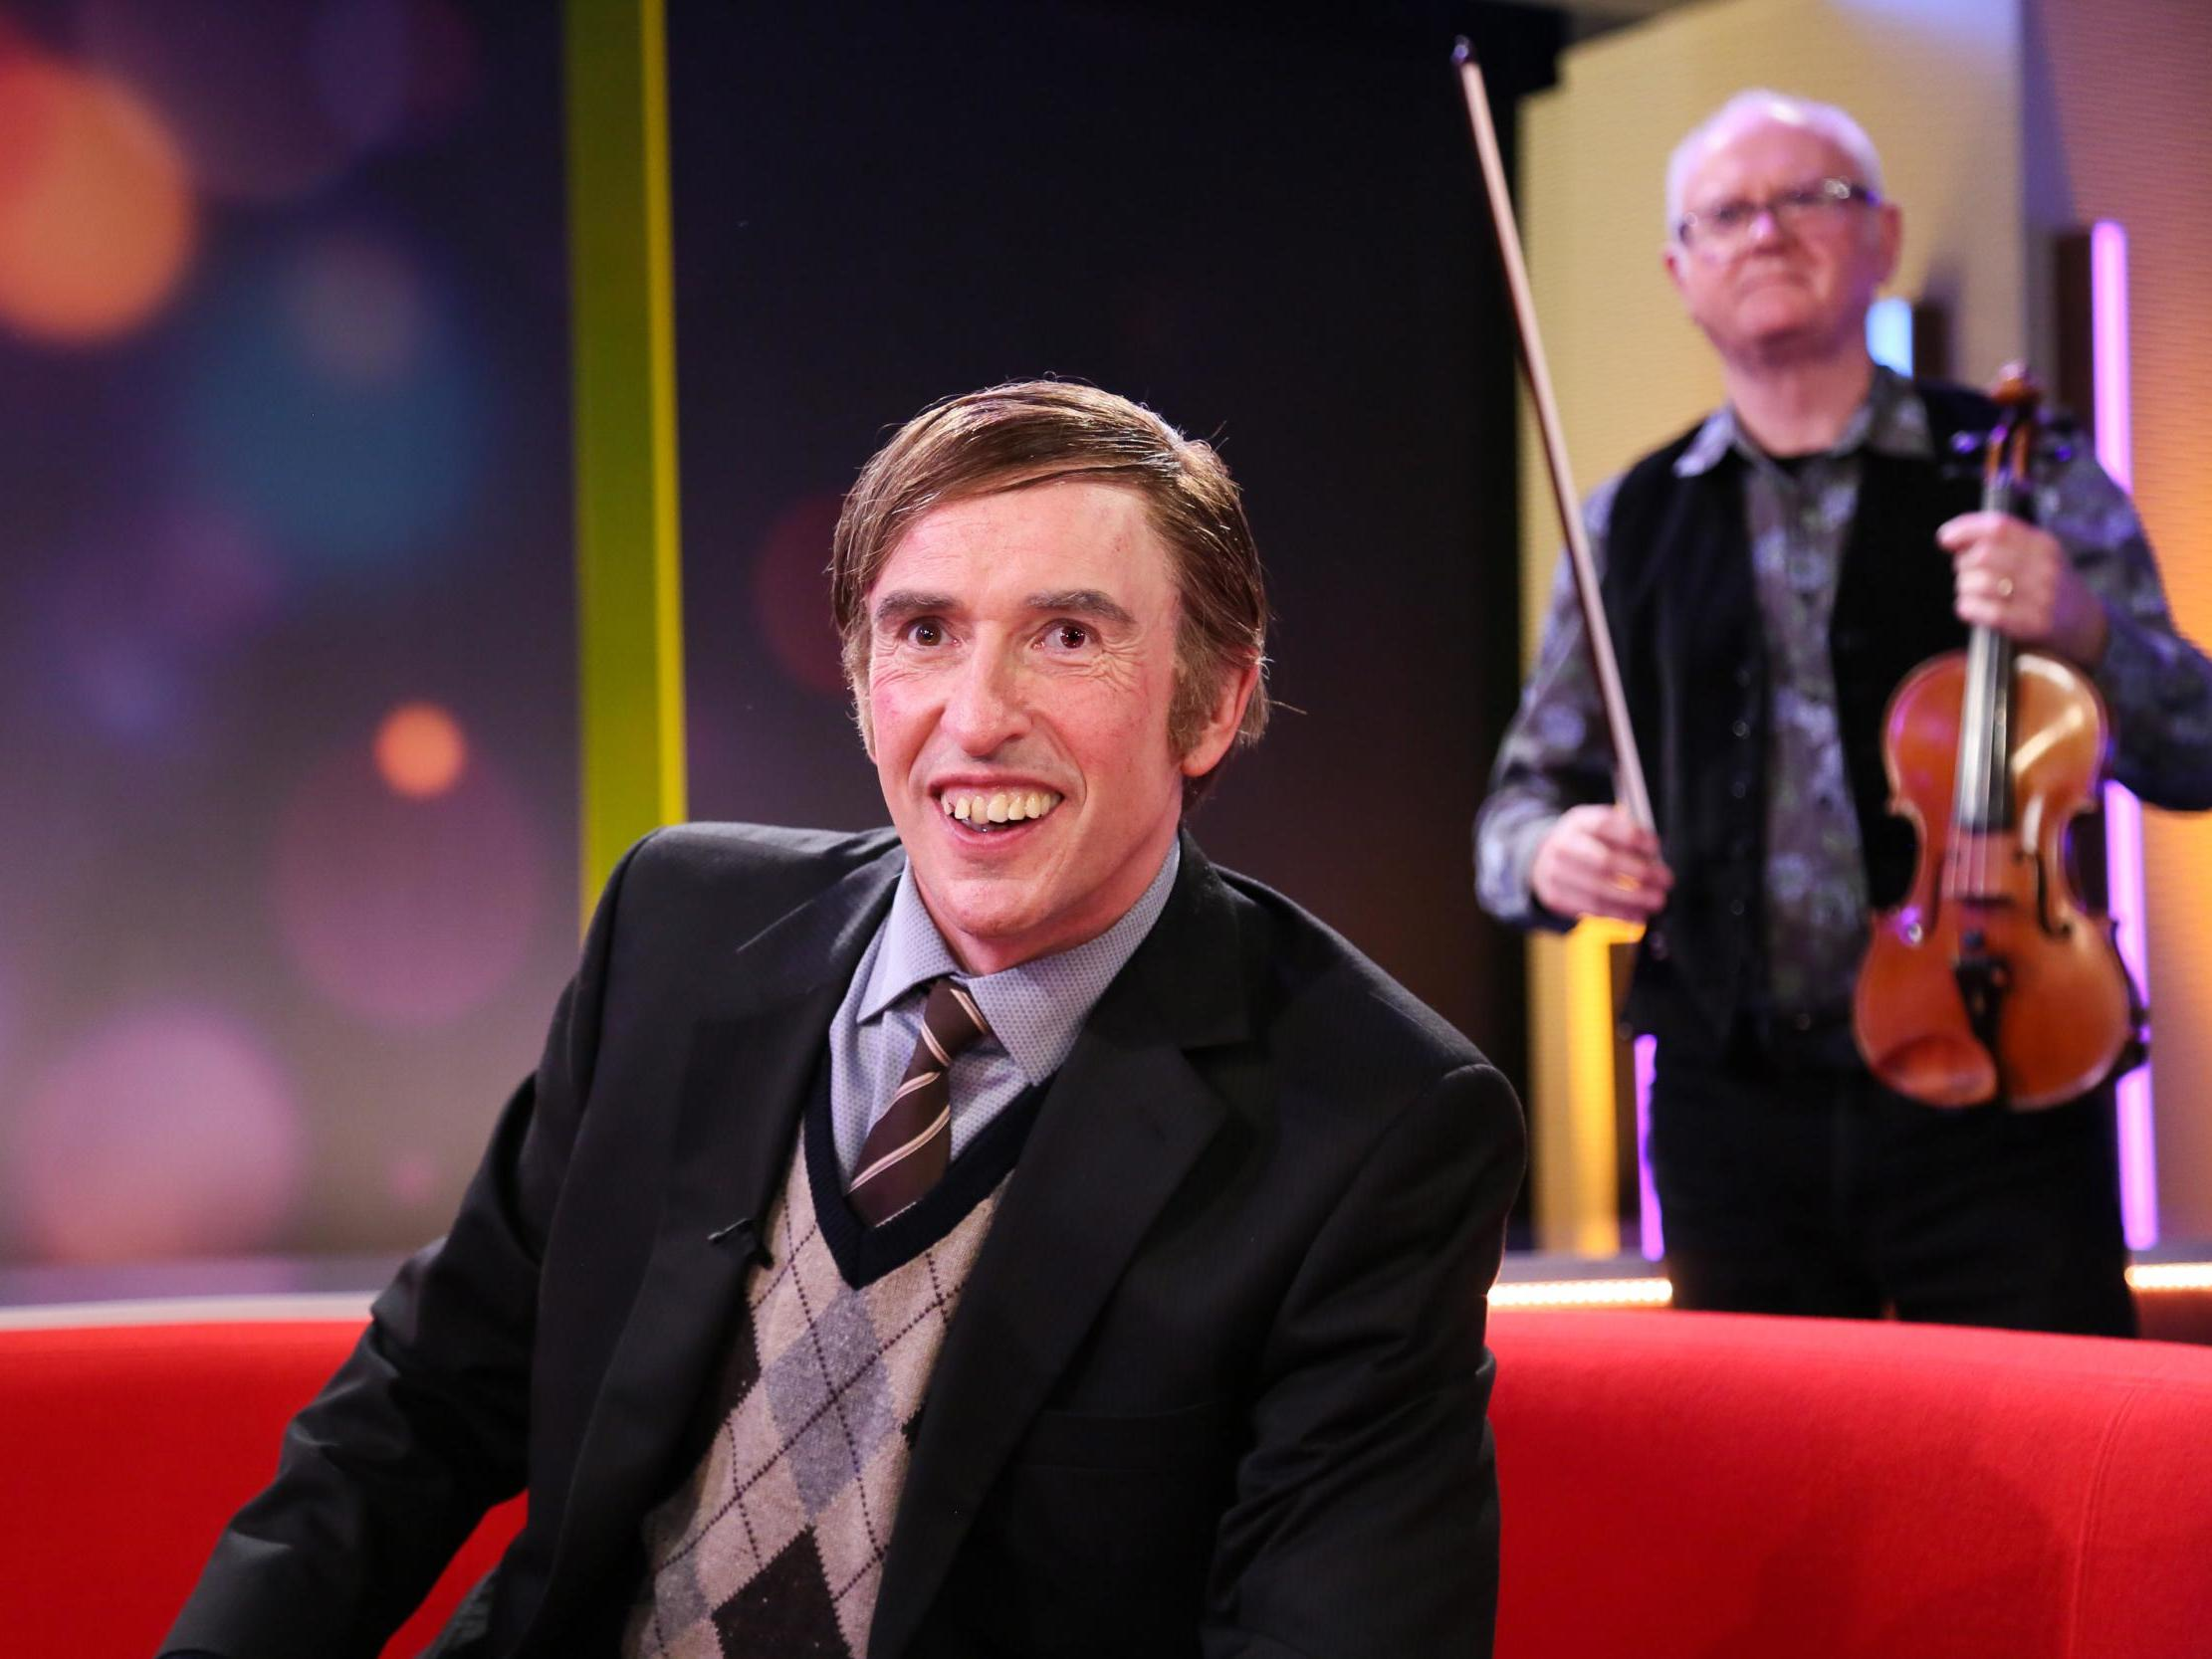 This Time with Alan Partridge, episode 4, review: There has